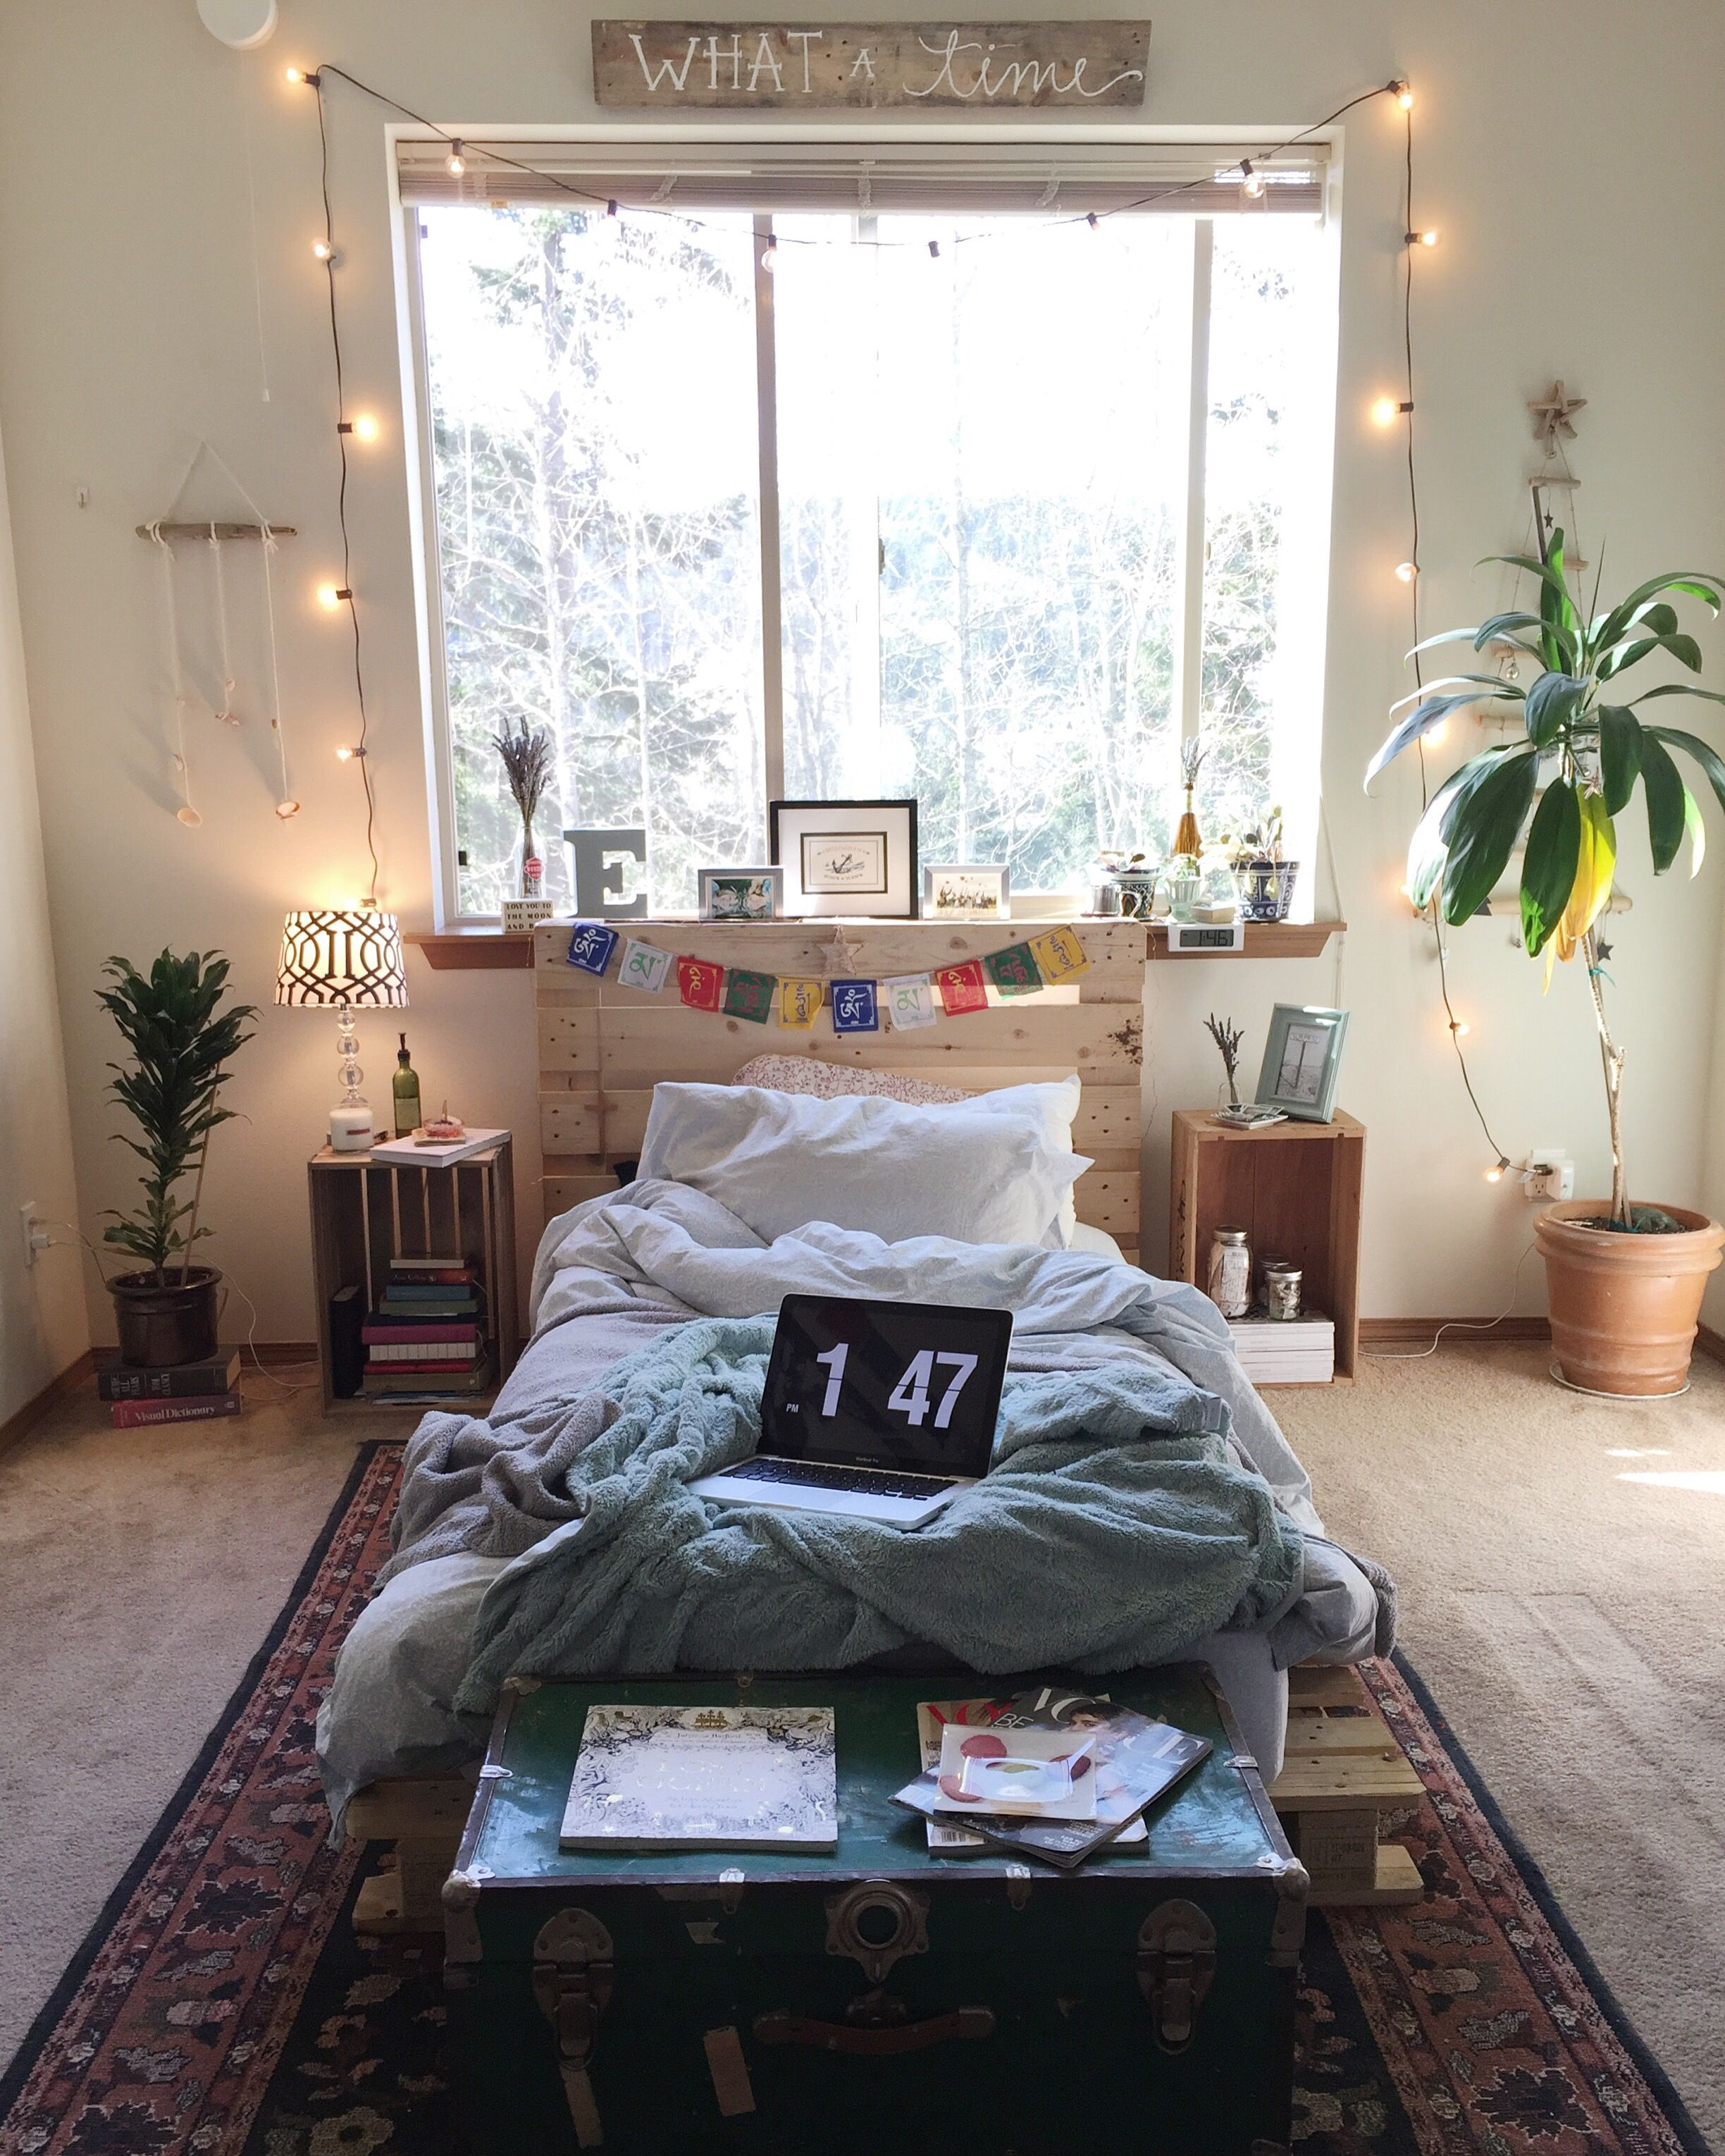 P?n?ere??//@katelynjennnax ? | home | Pinterest | Bedrooms, Room ...